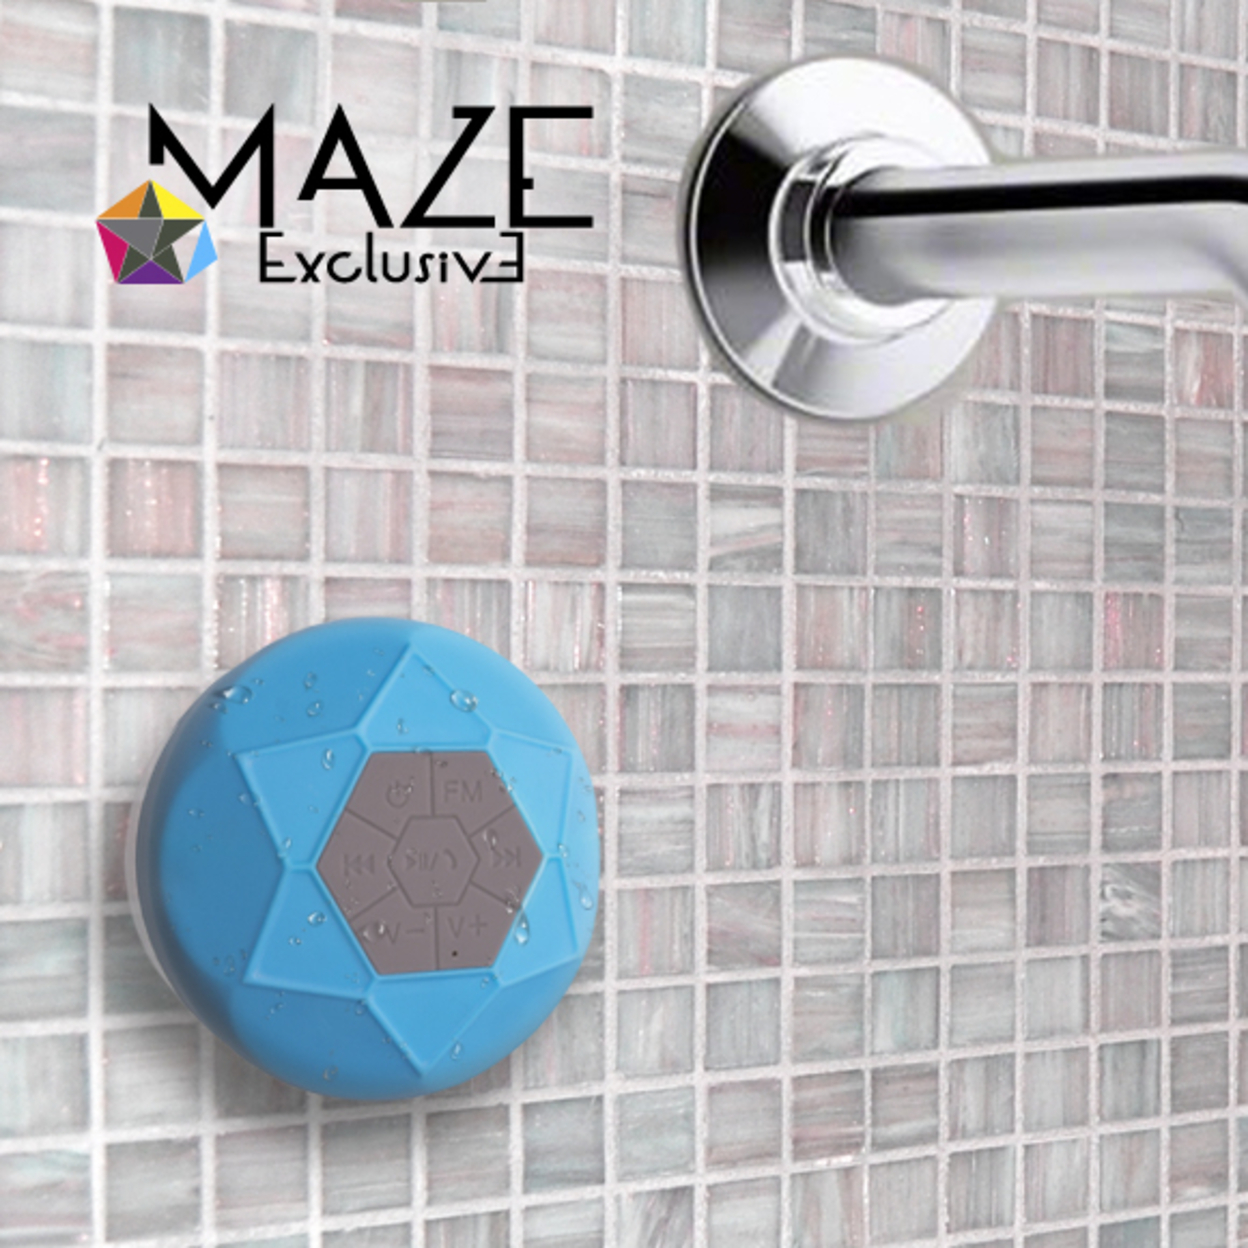 Maze Exclusive Ipx7 Waterproof Bluetooth Shower Speaker With Built in FM Radio - 2 Colors - Black 568add706f3d6f11148b4754